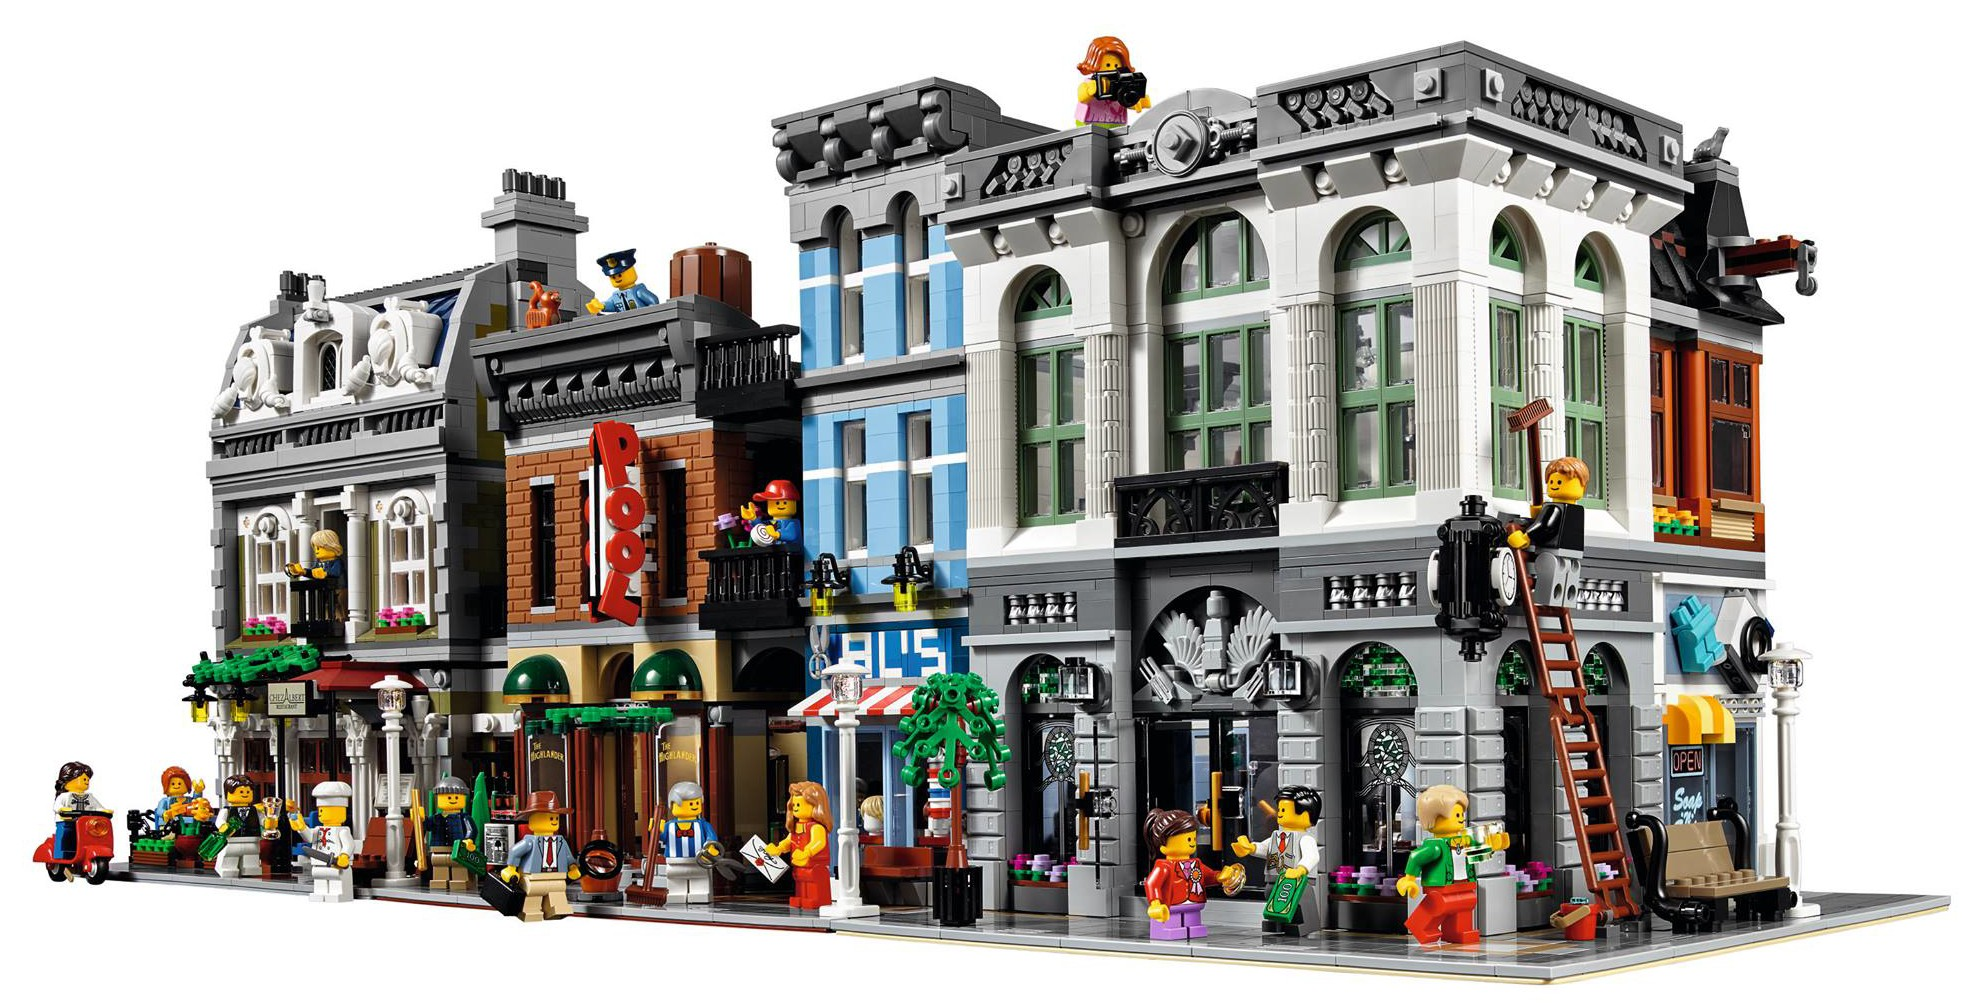 Lego brick bank 10251 modular building 2016 set revealed for Case modulari strette